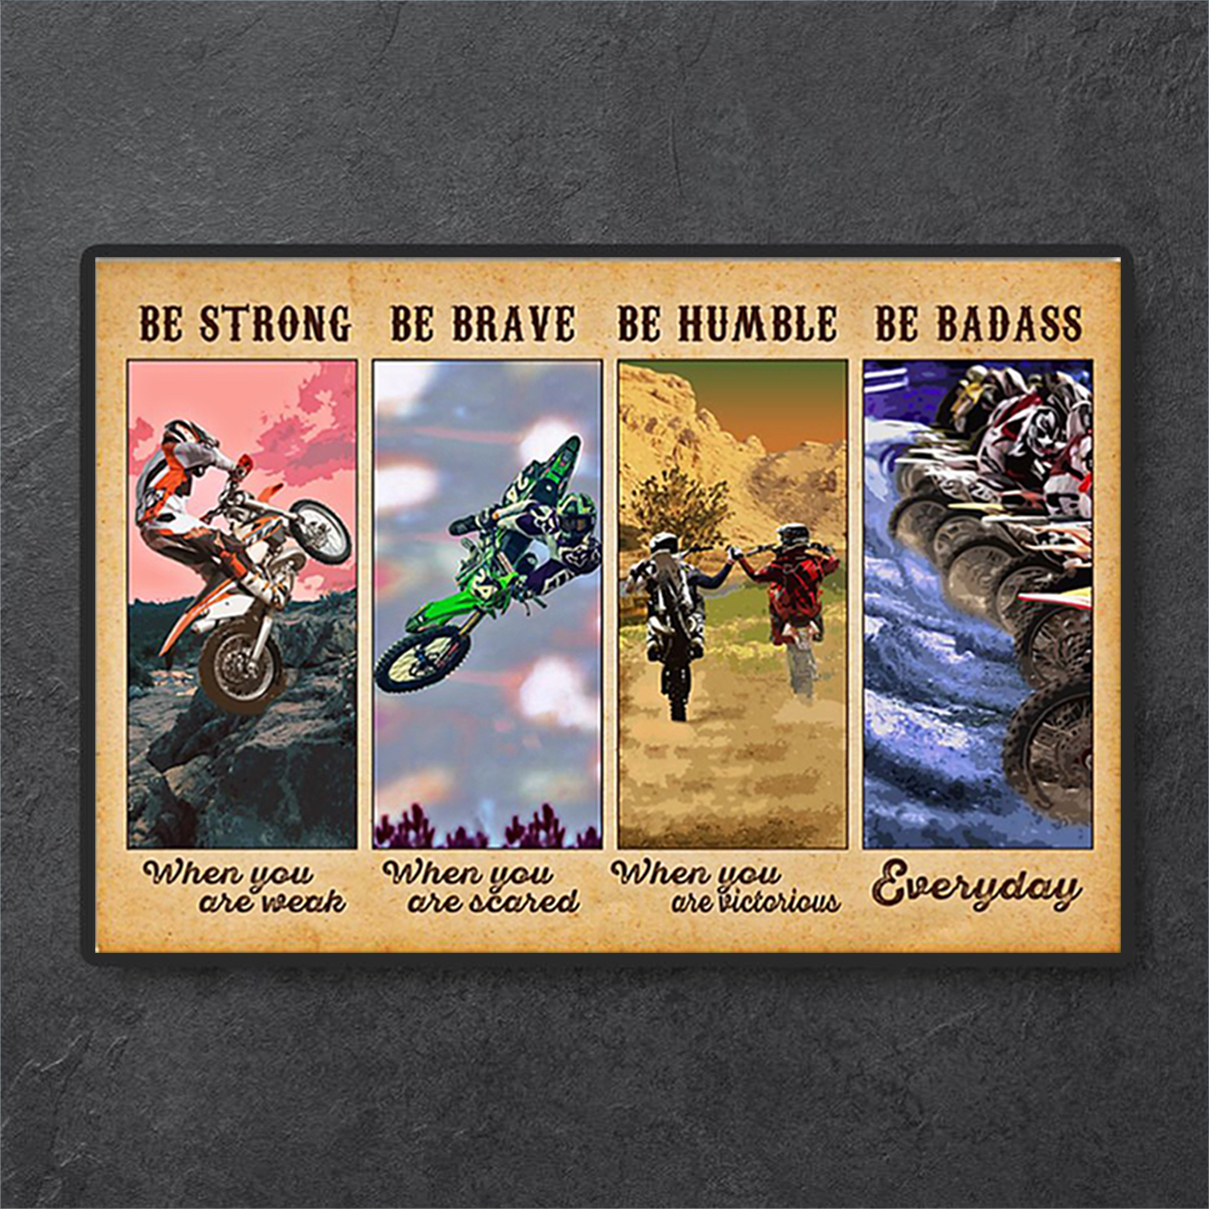 Motocross be strong be brave be humble be badass poster A3